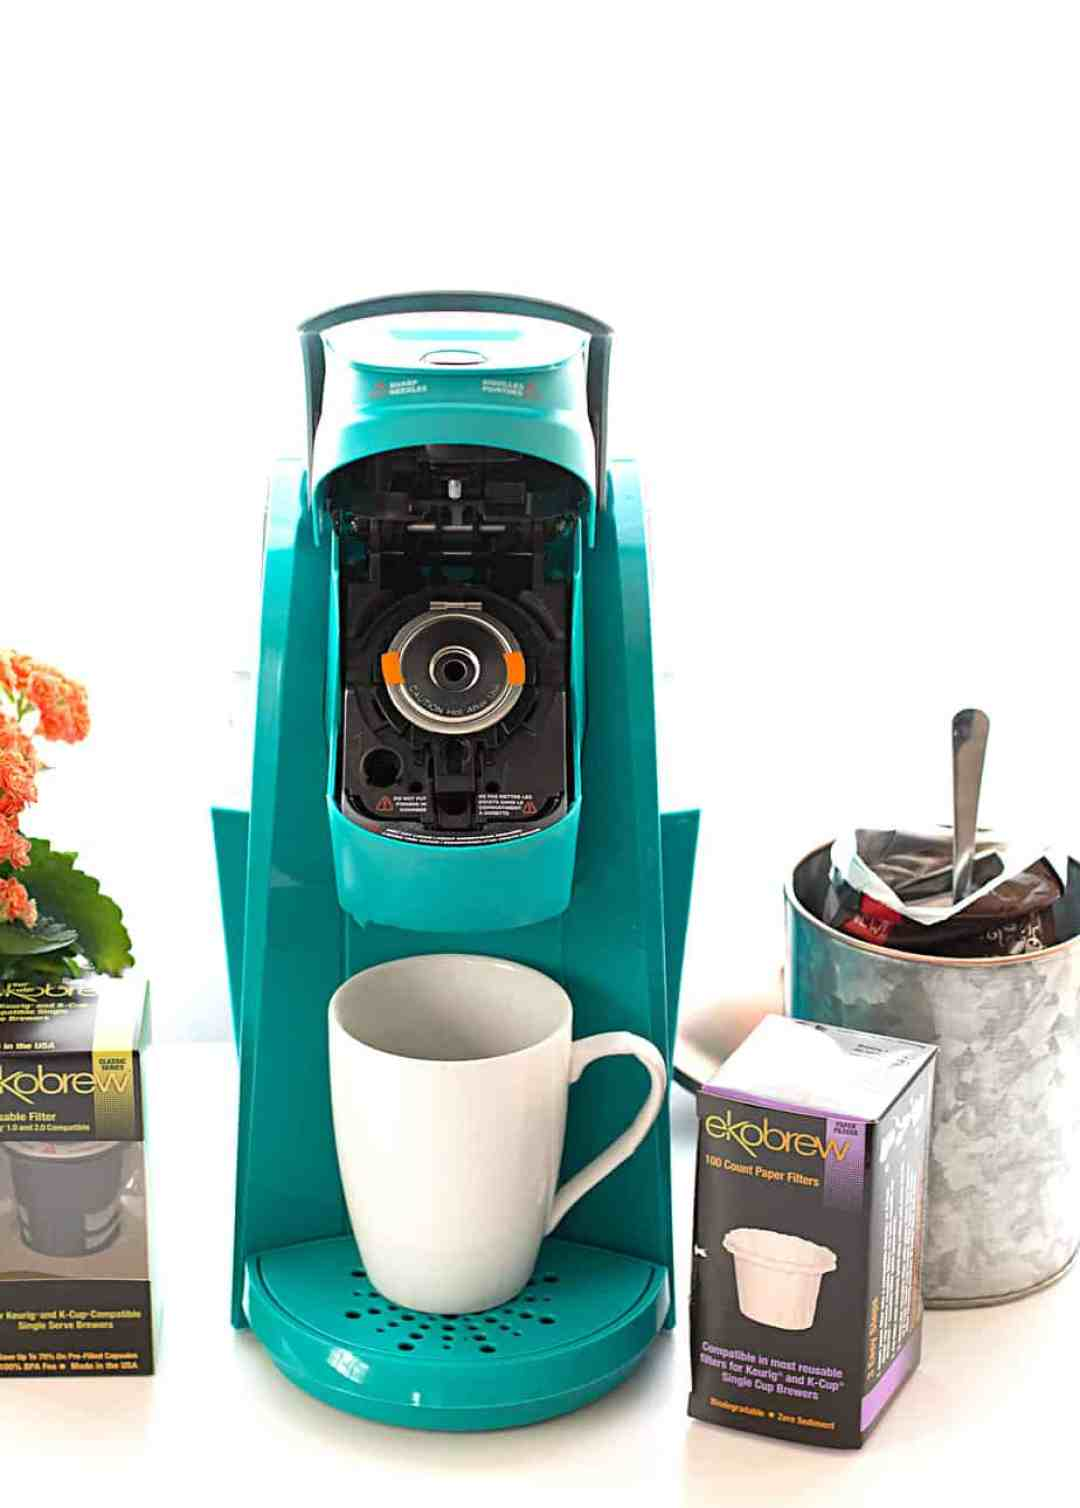 Keurig Coffee Maker Knock Off : My Favorite Item for My Productive Morning Routine + USD 250 Walmart Gift Card - Posh Journal